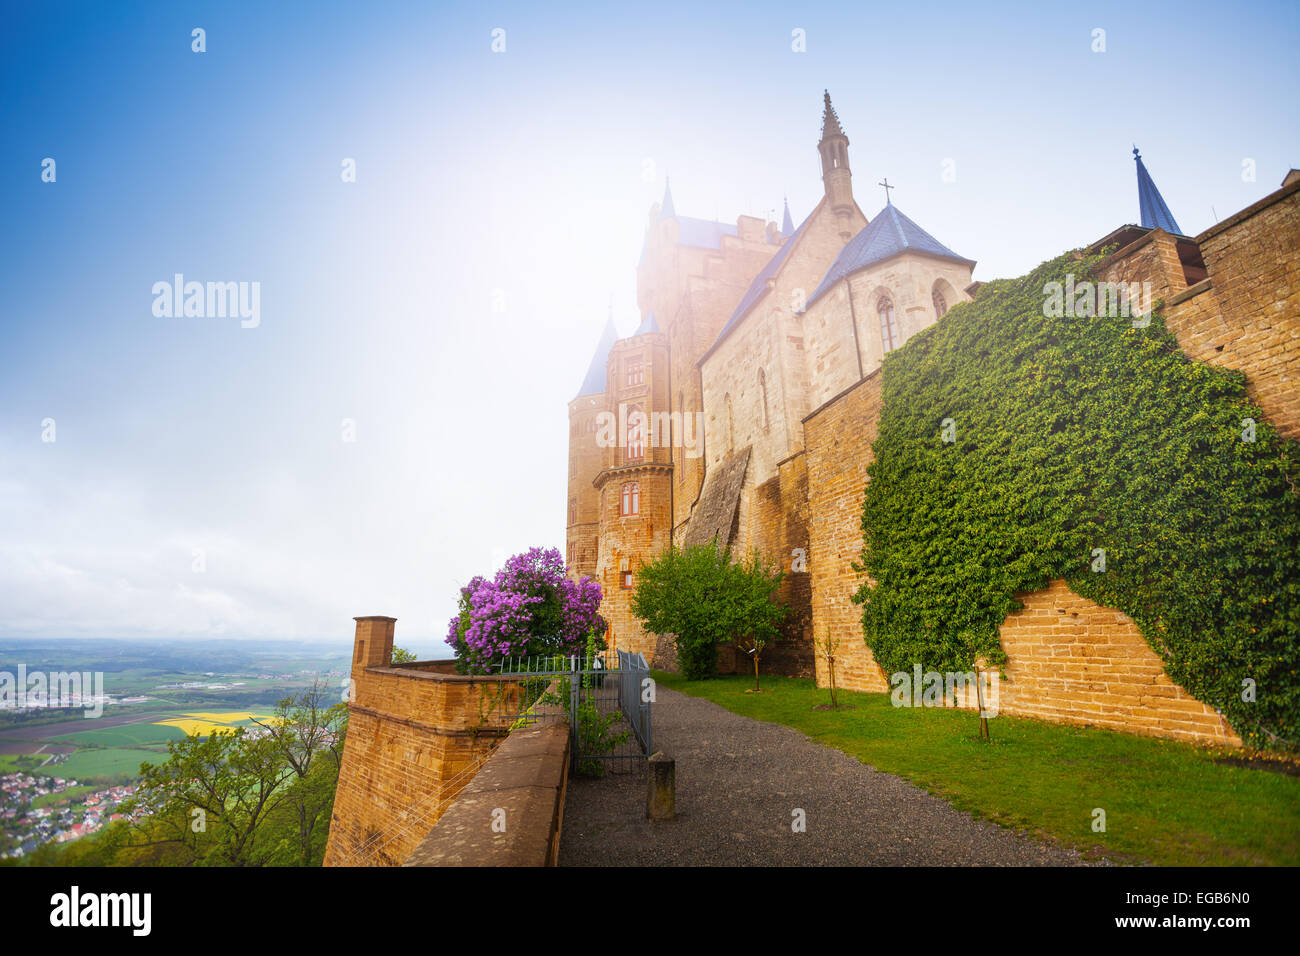 The wall with ivy of beautiful Hohenzollern castle - Stock Image